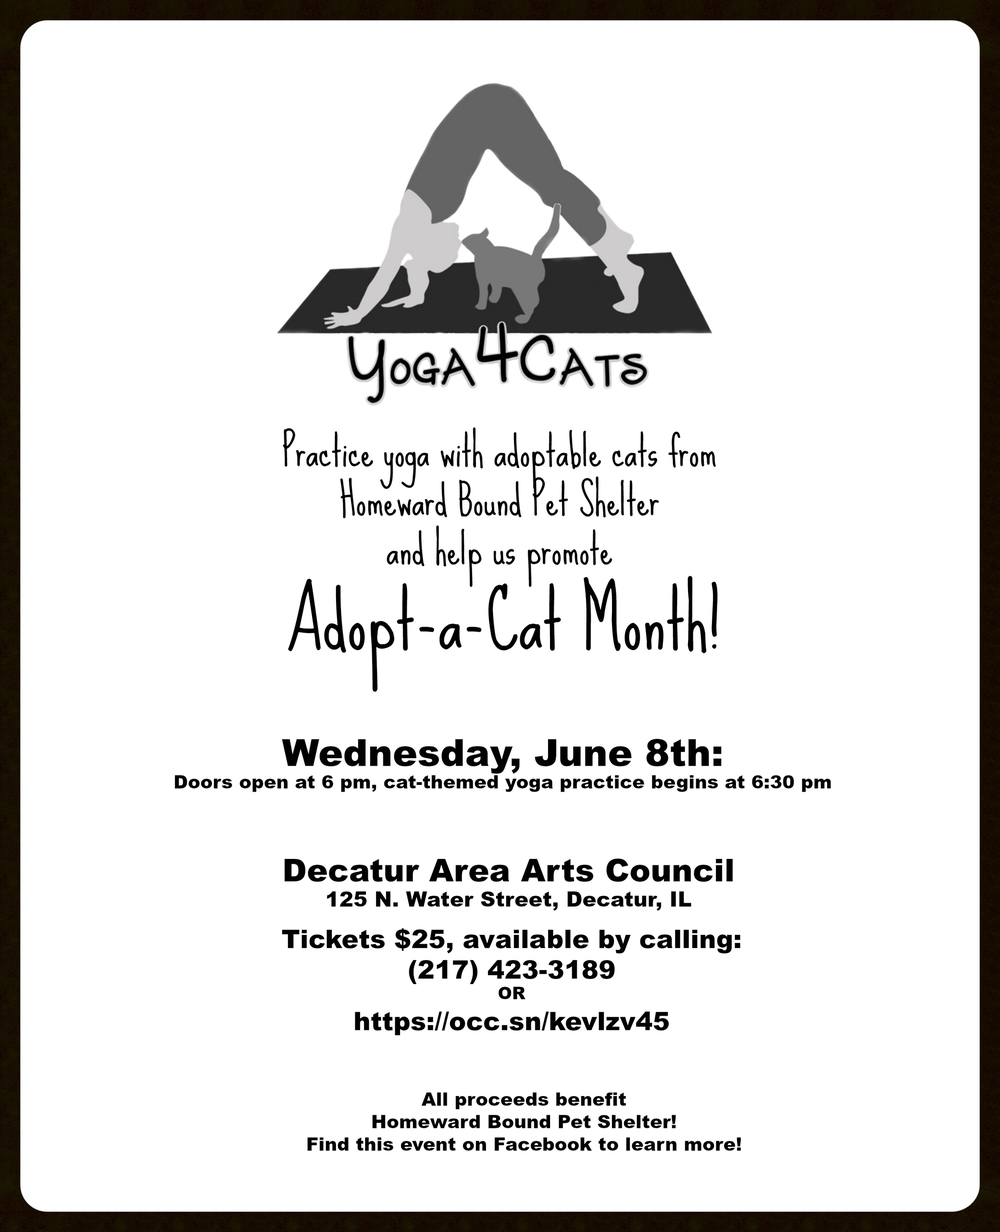 Yoga4Cats - Adopt a Cat Month!